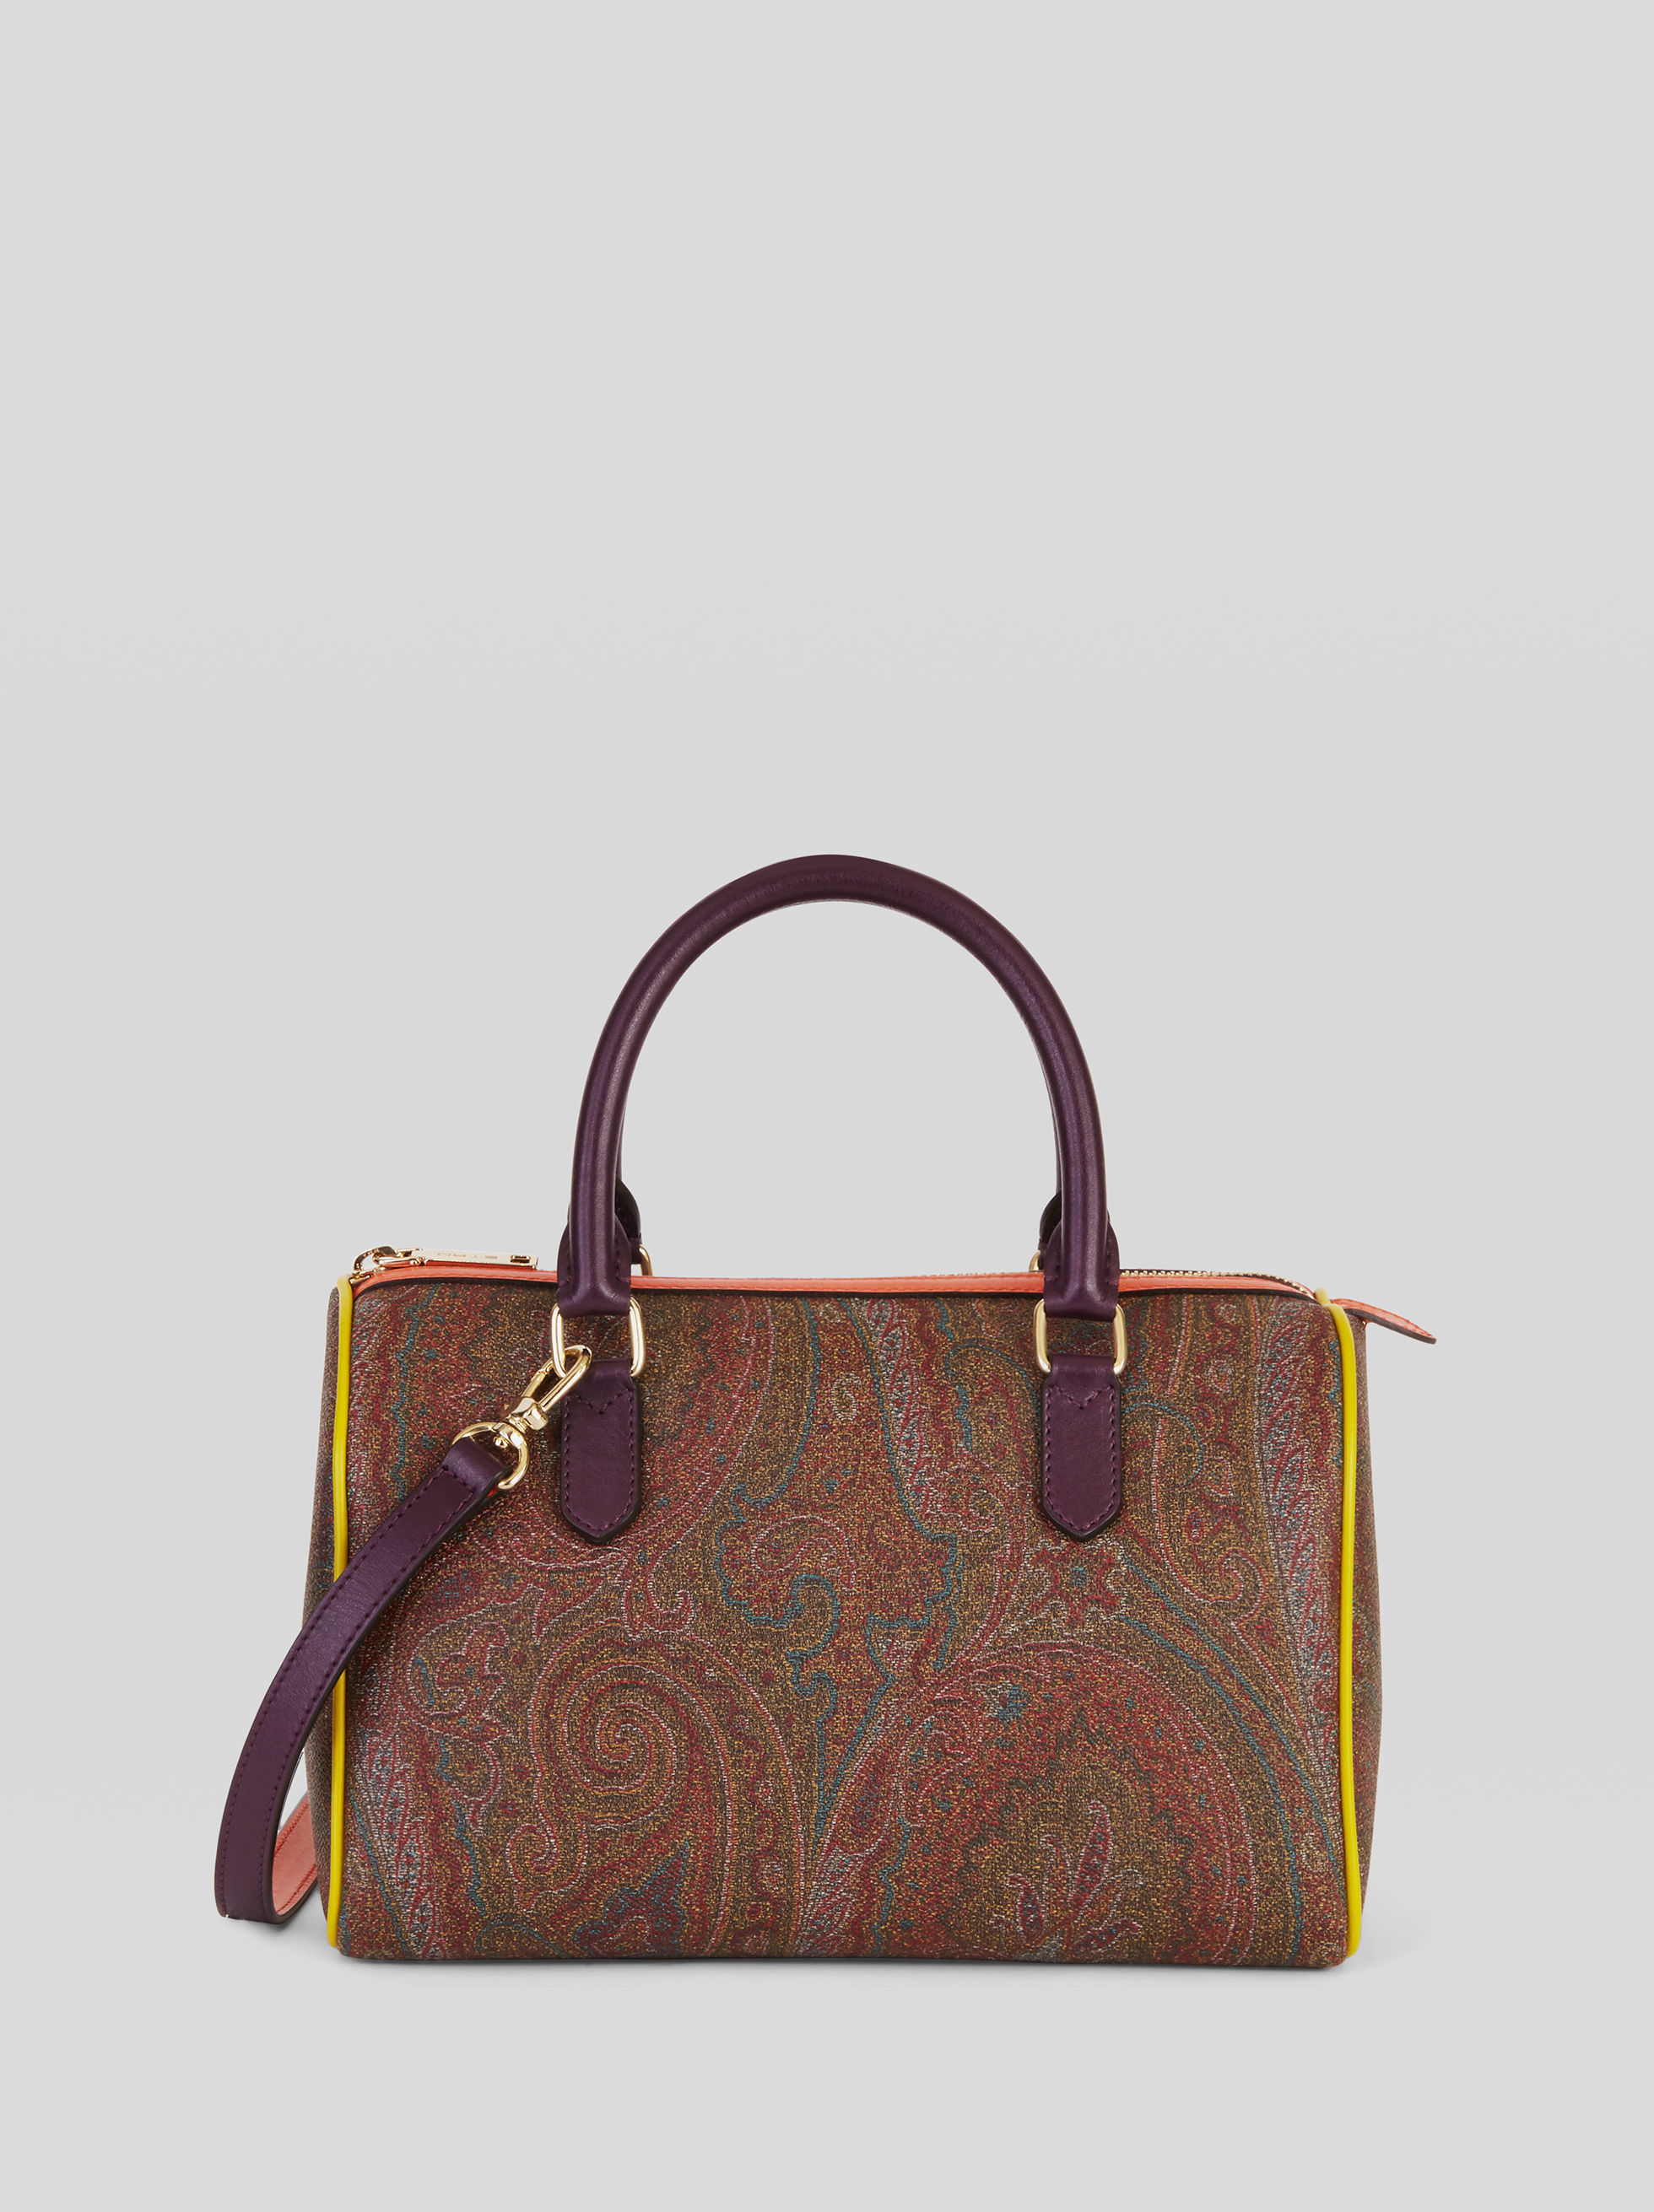 PAISLEY HANDBAG WITH MULTICOLORED INSERTS